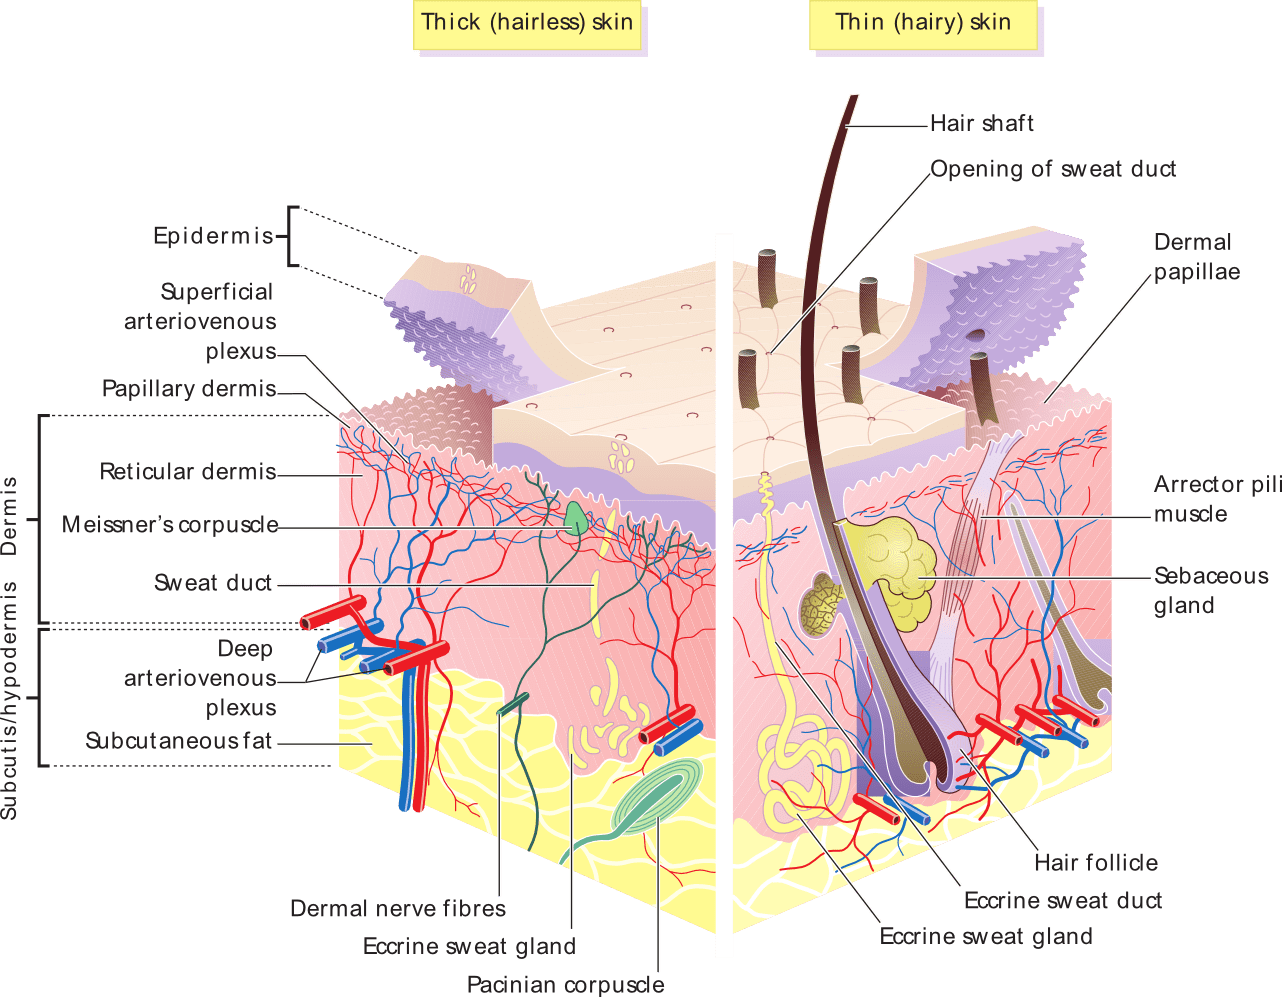 7 layers of skin diagram bell 801 door entry handset wiring the boundless anatomy and physiology located at http upload wikimedia org wikipedia commons 3 36 png